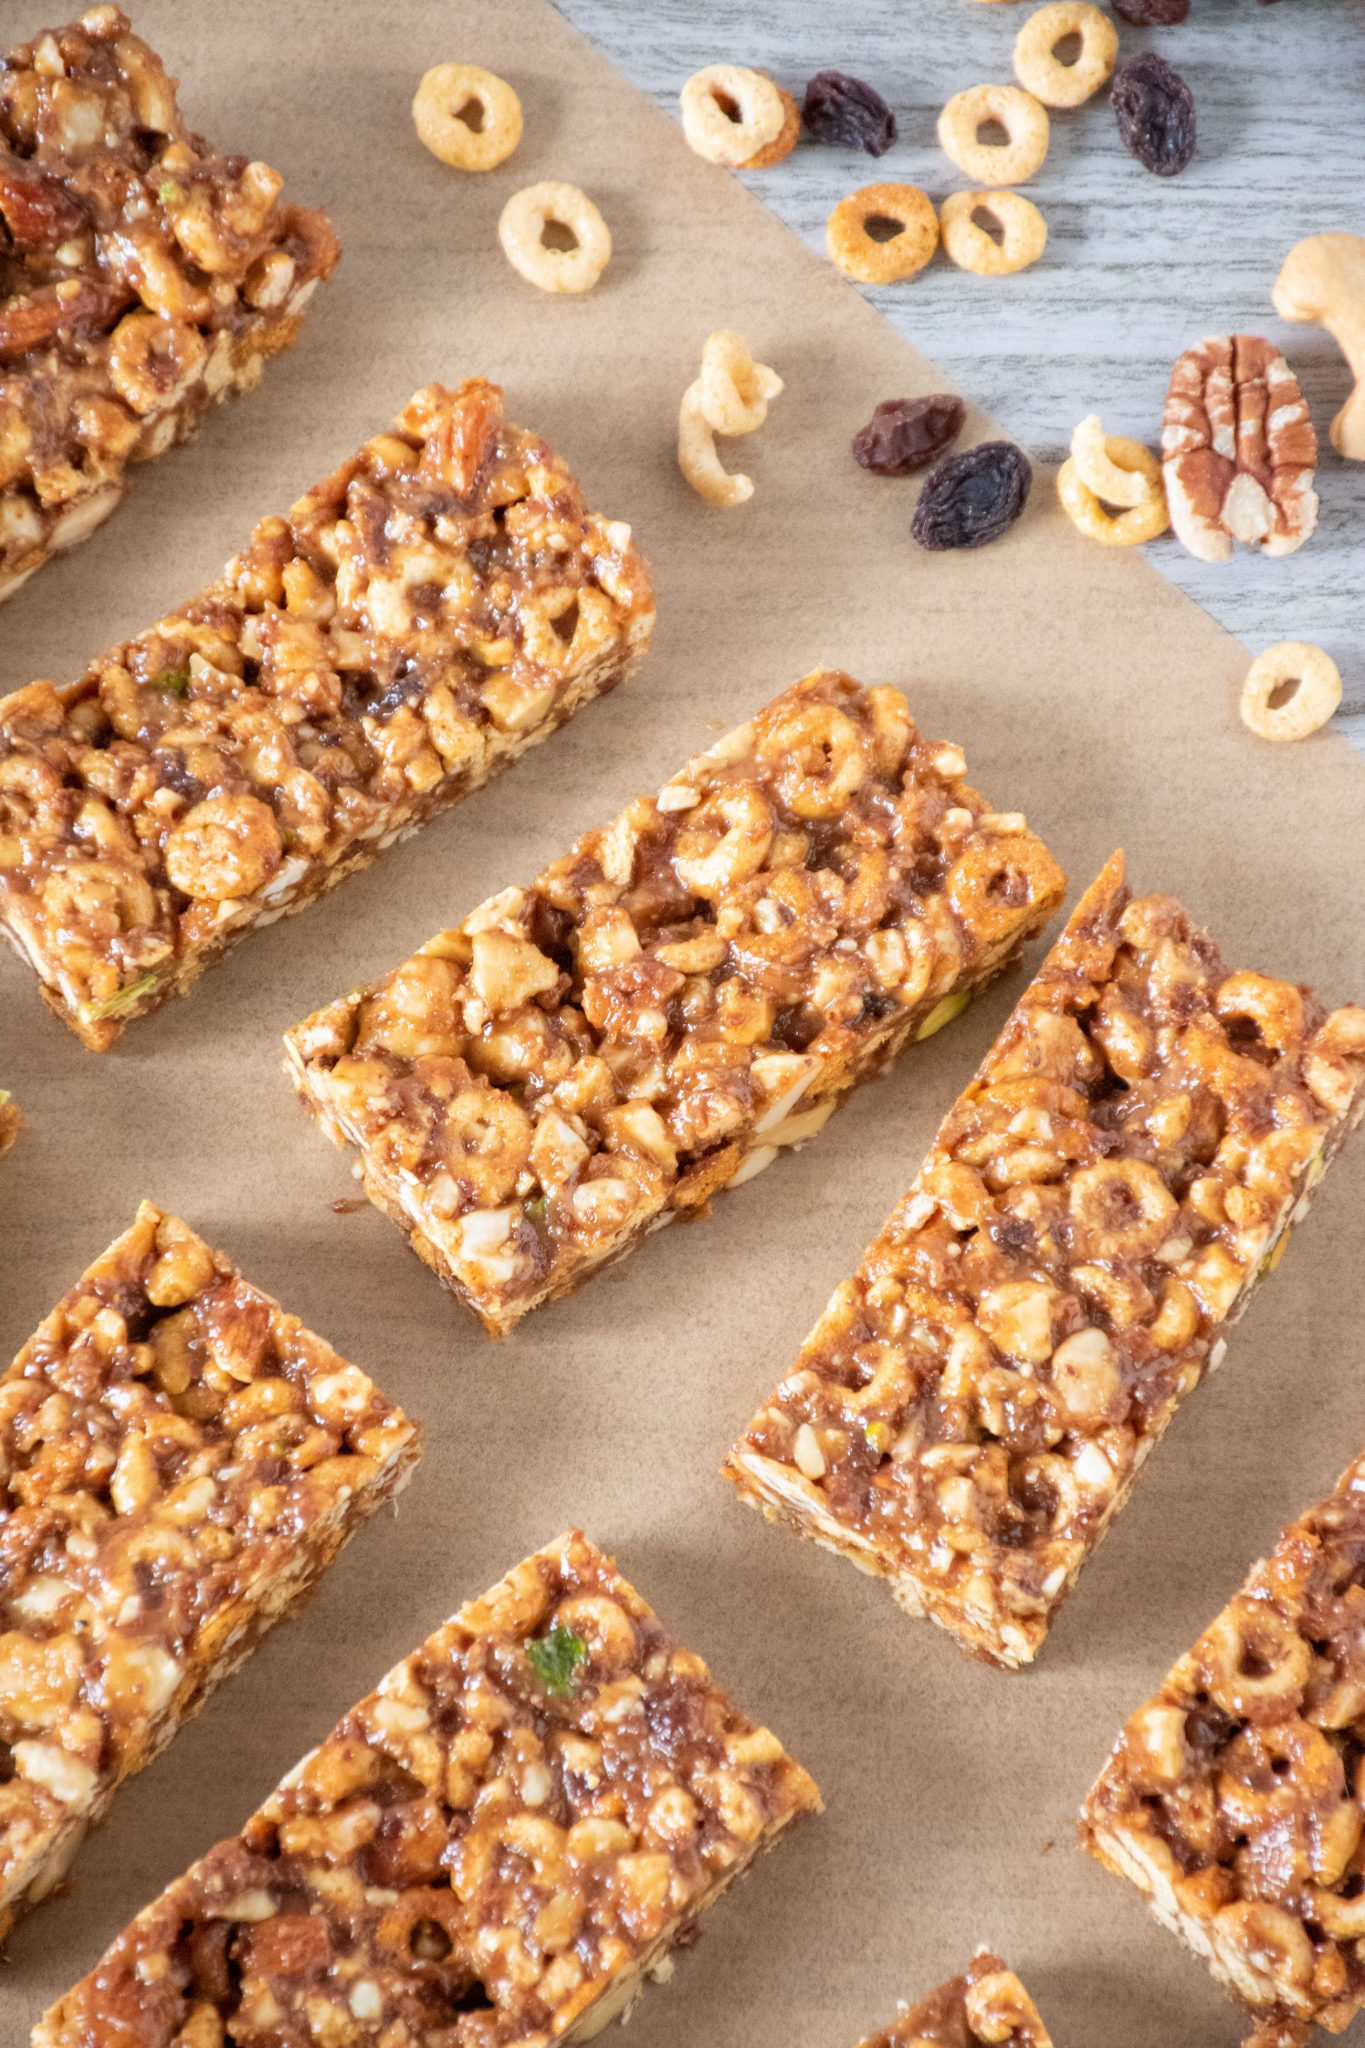 Overhead view of cereal bars on parchment paper.